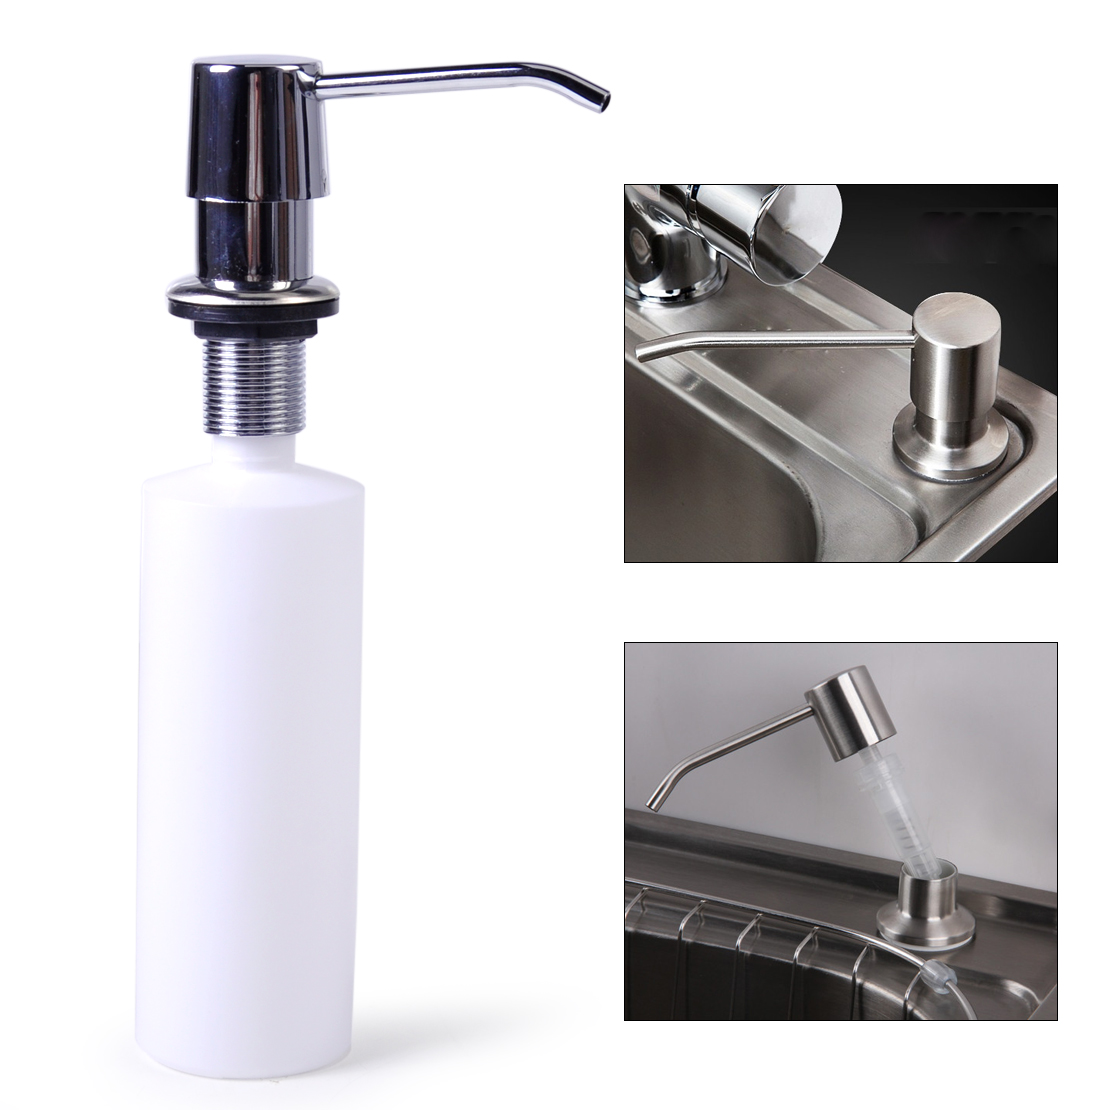 Hand Soap Bottle Holder Kitchen Bathroom Sink Soap Lotion Dispenser Stainless